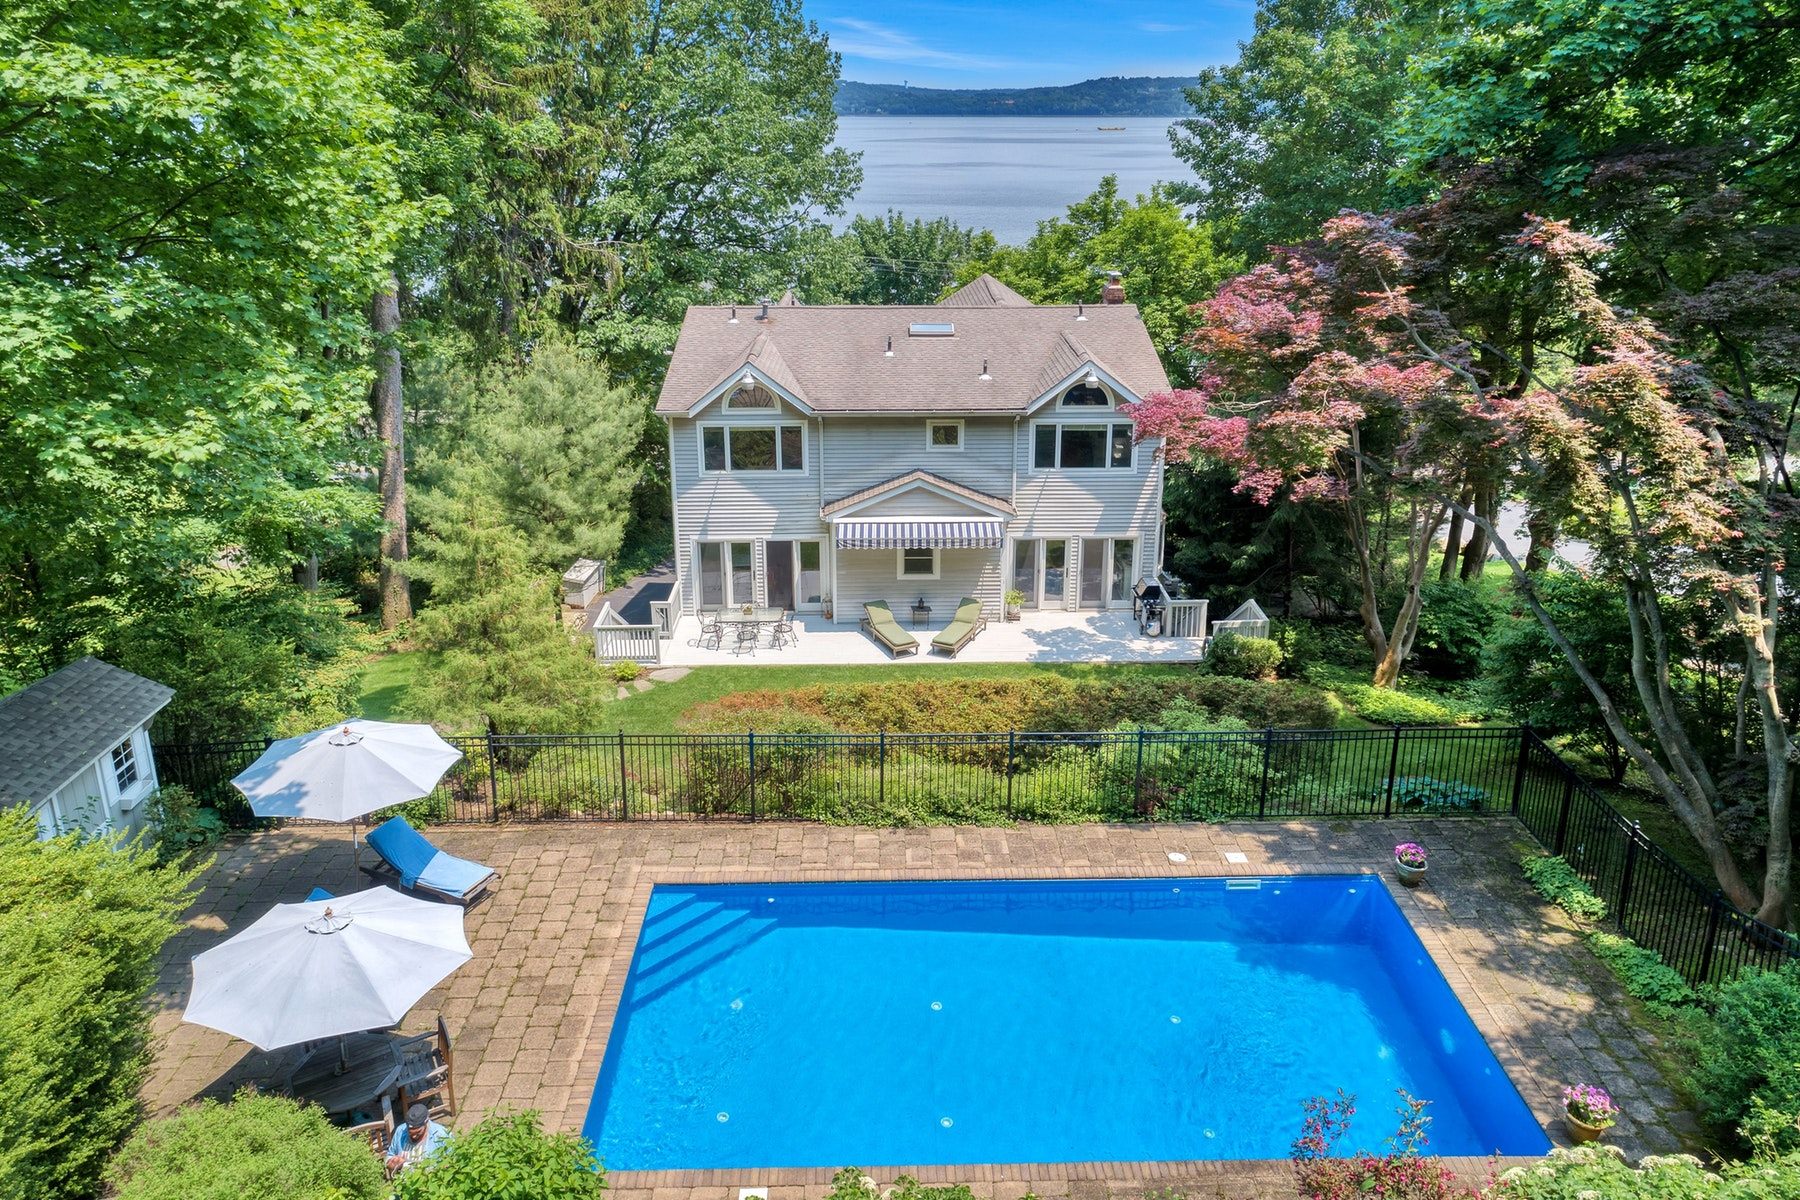 Single Family Homes for Active at Hudson River Views 237 River Rd. Grandview, New York 10960 United States